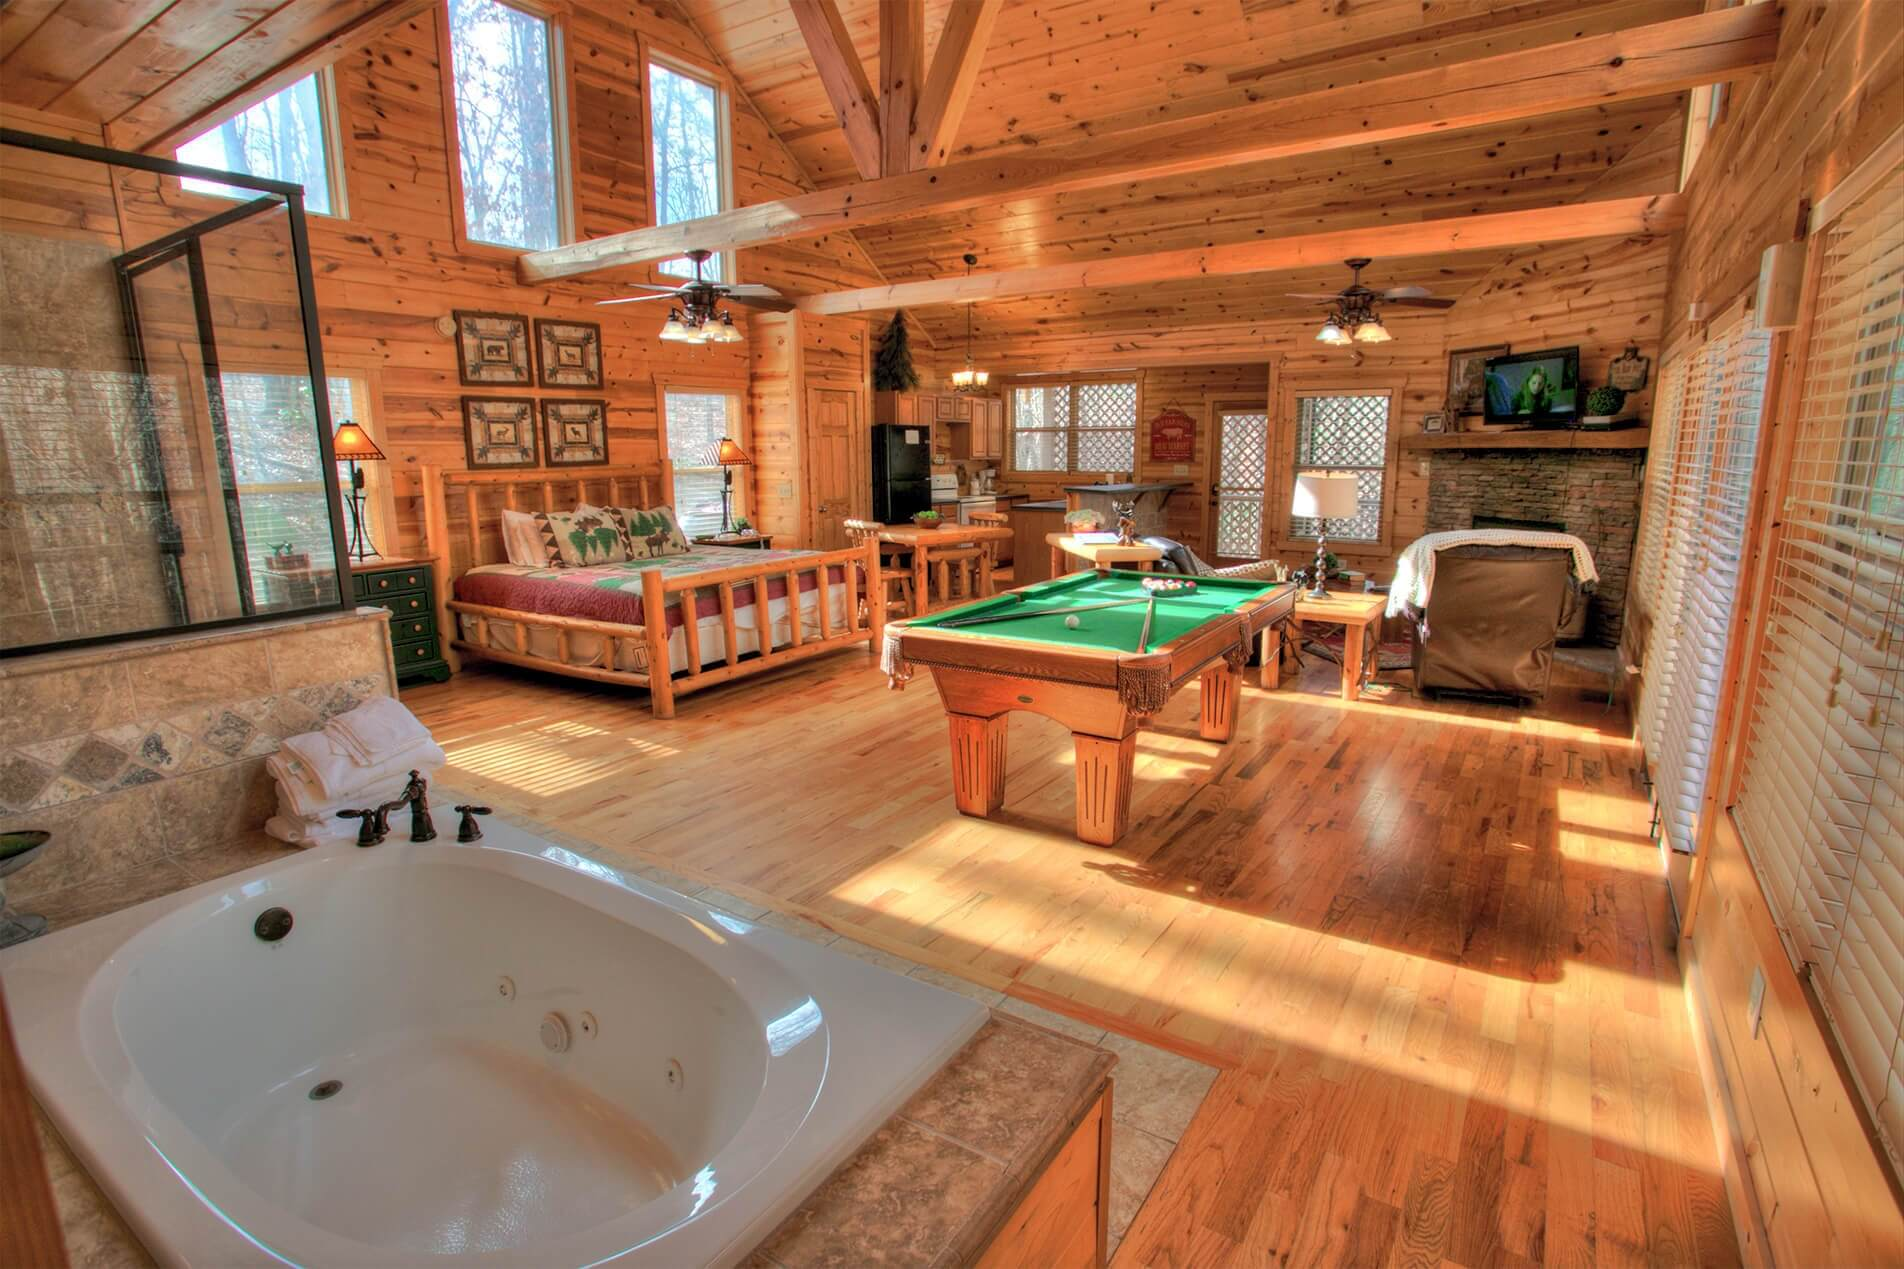 Helen Ga Cabin Rental For Couples Escape Hot Tub Getaway